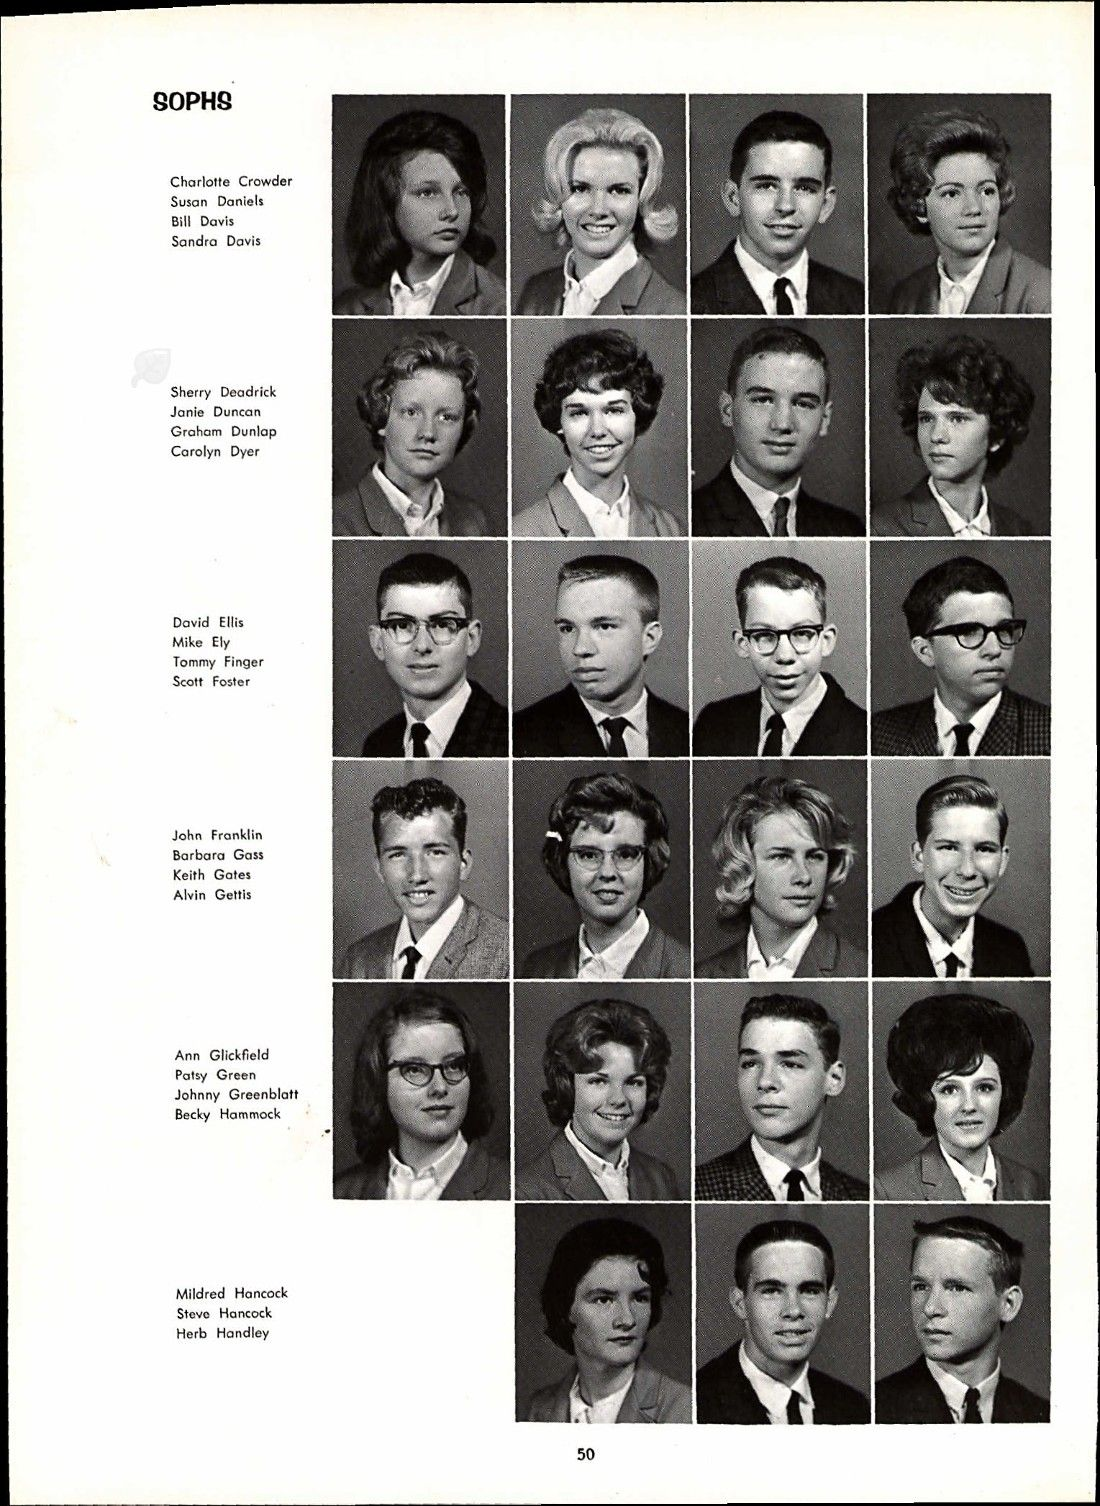 OLD MILL HIGH SCHOOL - 2018 PORTRAITS - Yearbook Discoveries  |Find Middle School Yearbooks